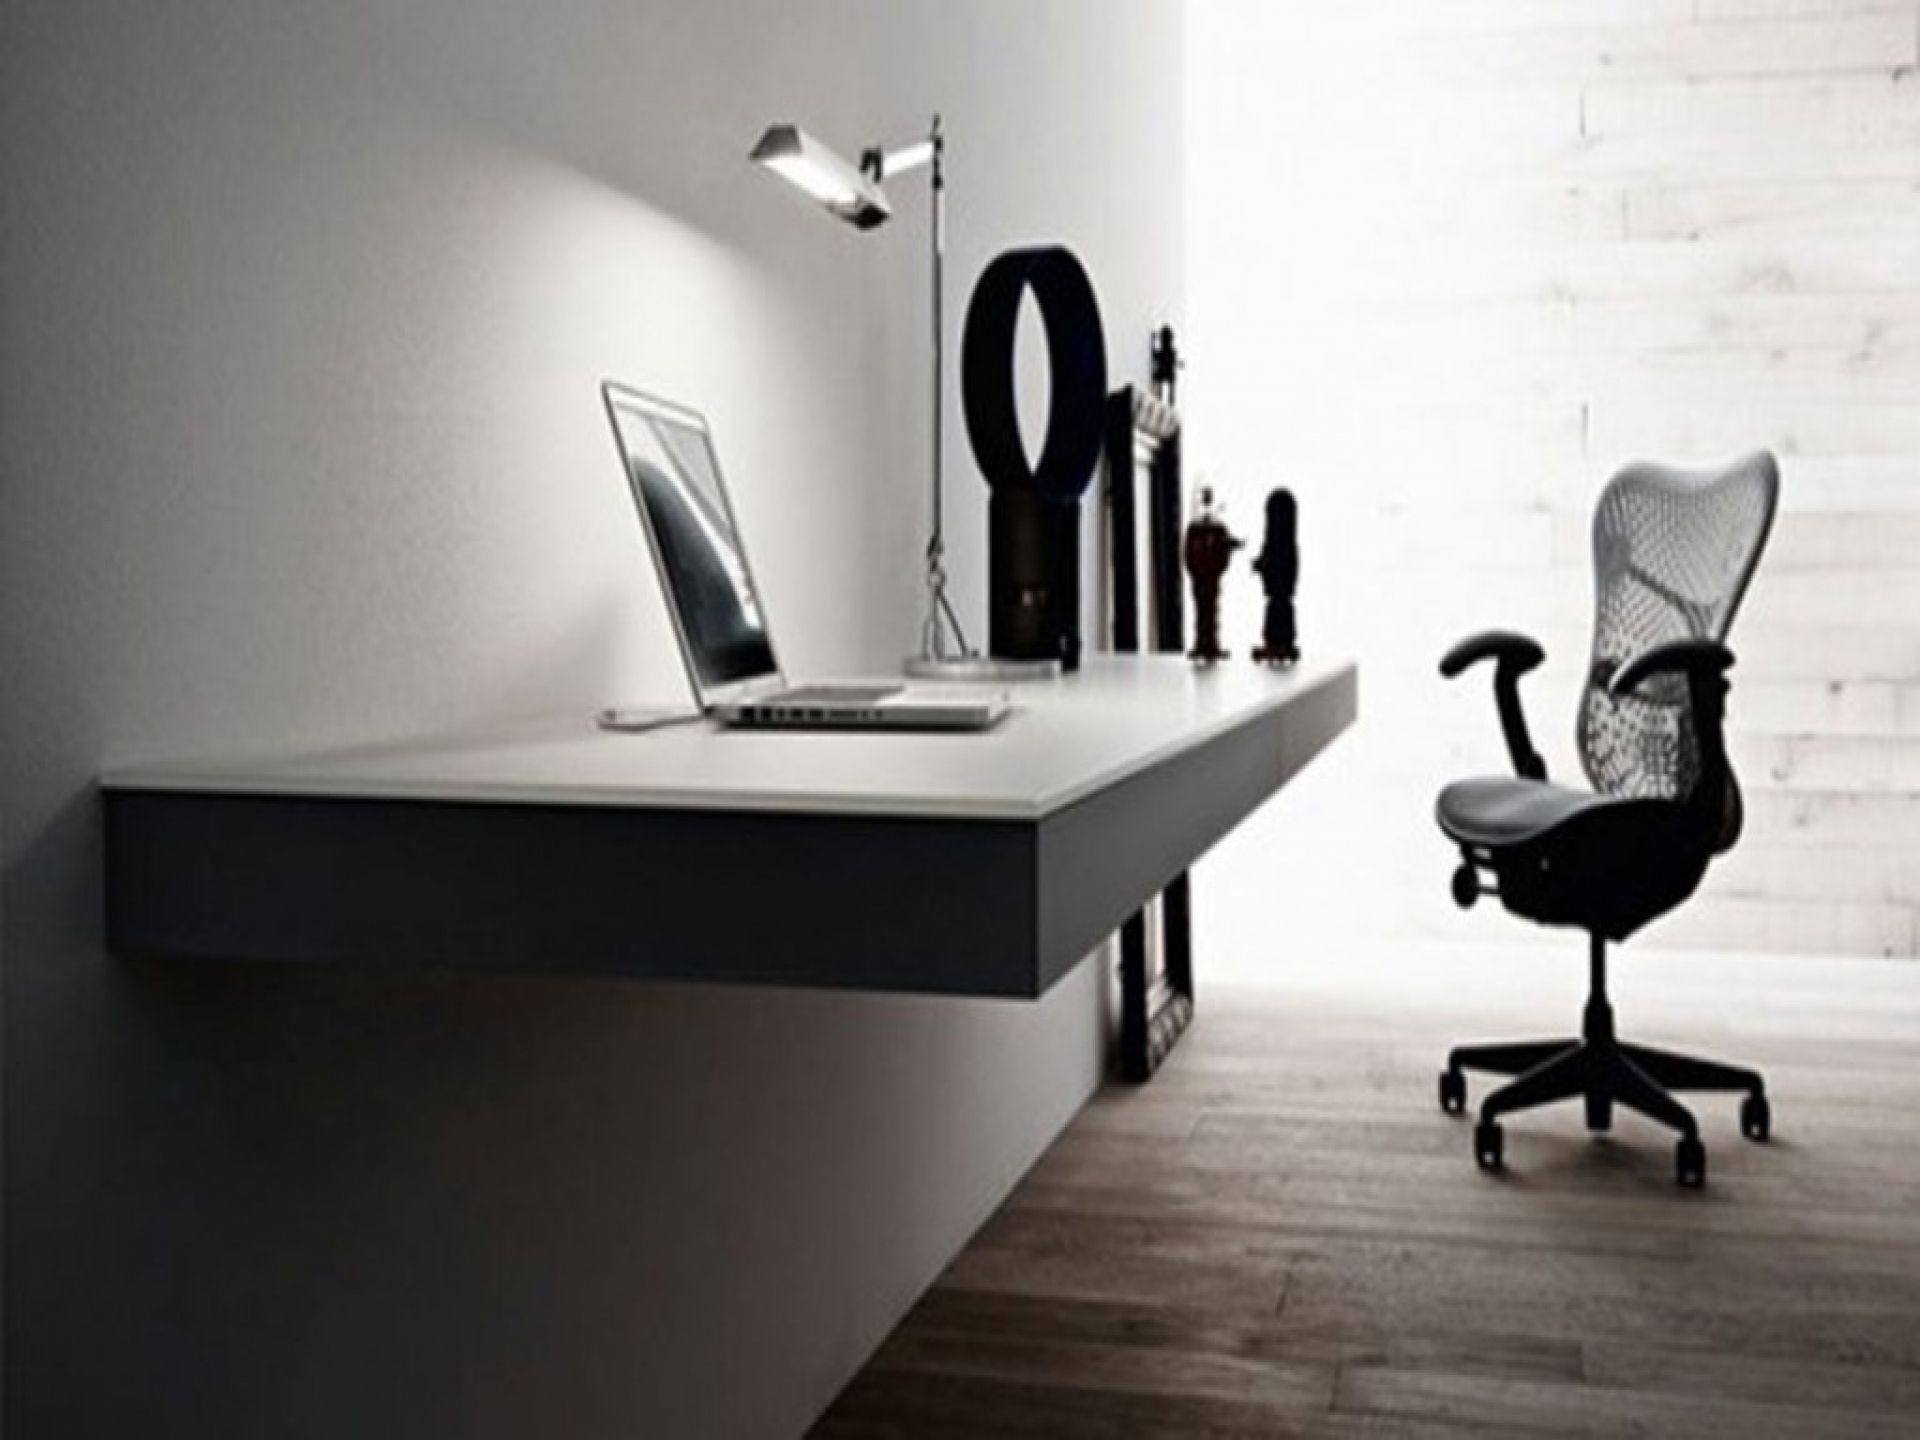 Luxury office furniture modern home minimalist minimalist home - Minimalist Home Office With Slim Desk Design Printing Stylish And Minimalist Home Office Design Ideas With